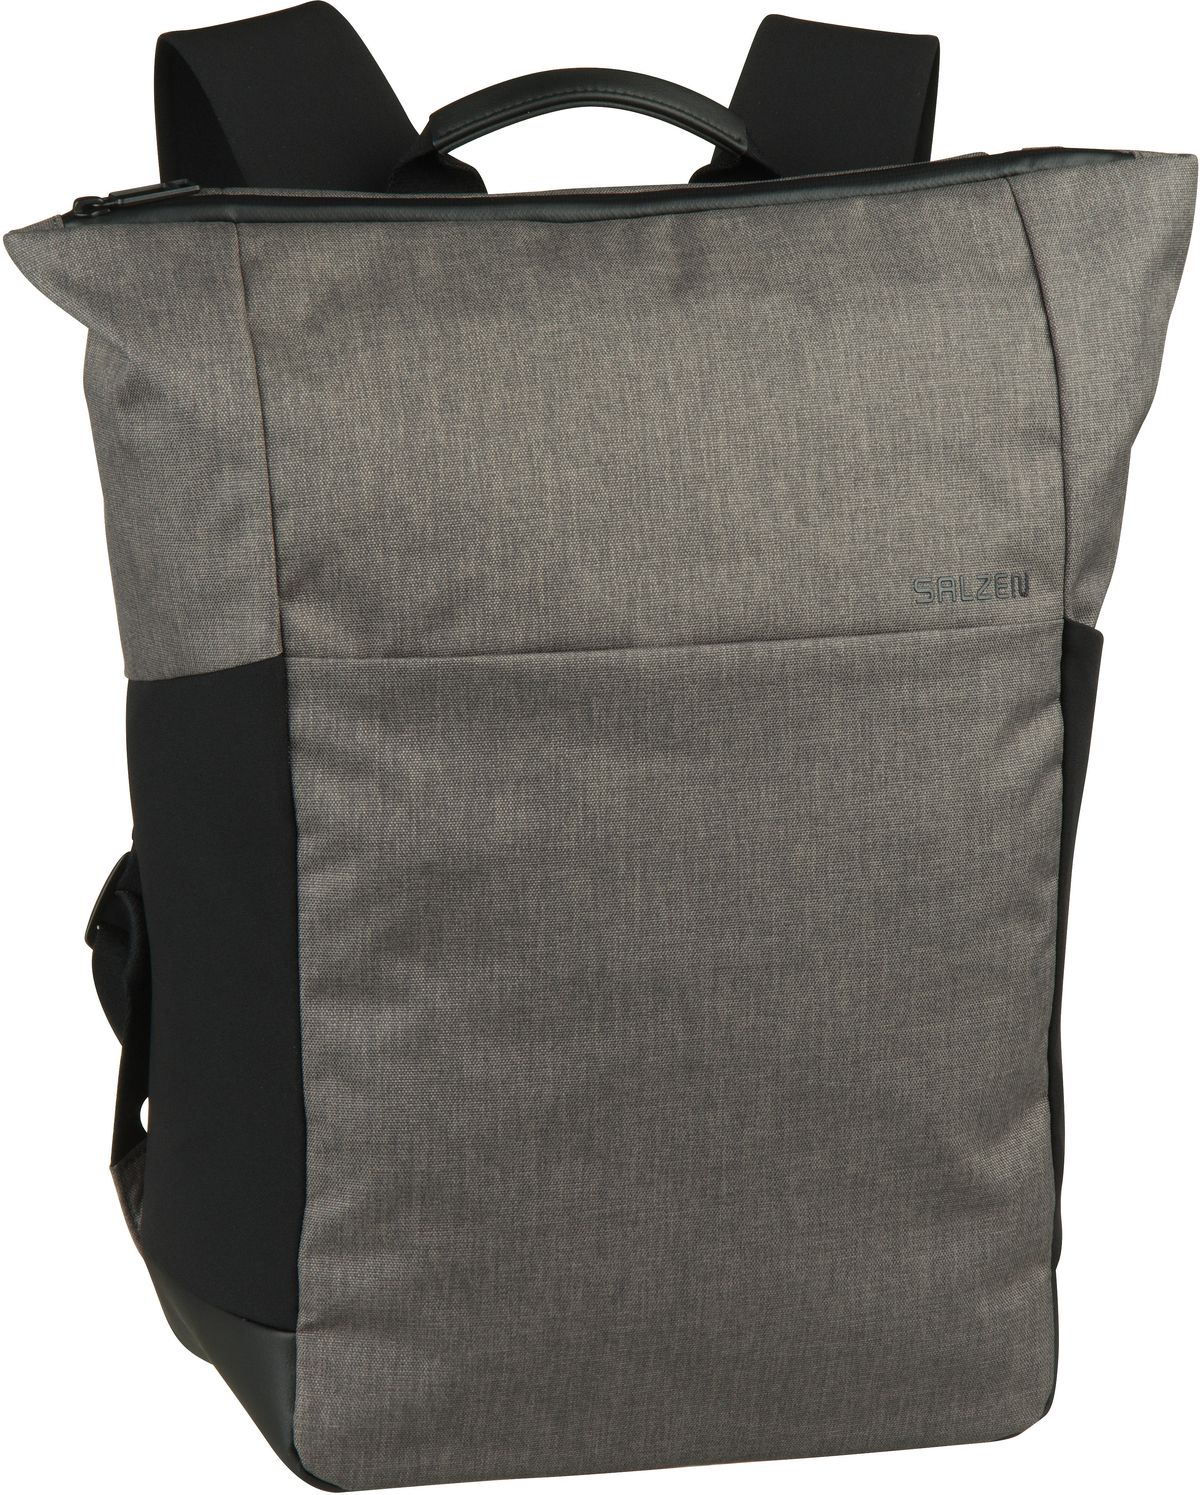 Rucksack / Daypack Plain Backpack Fabric Storm Grey (21 Liter)